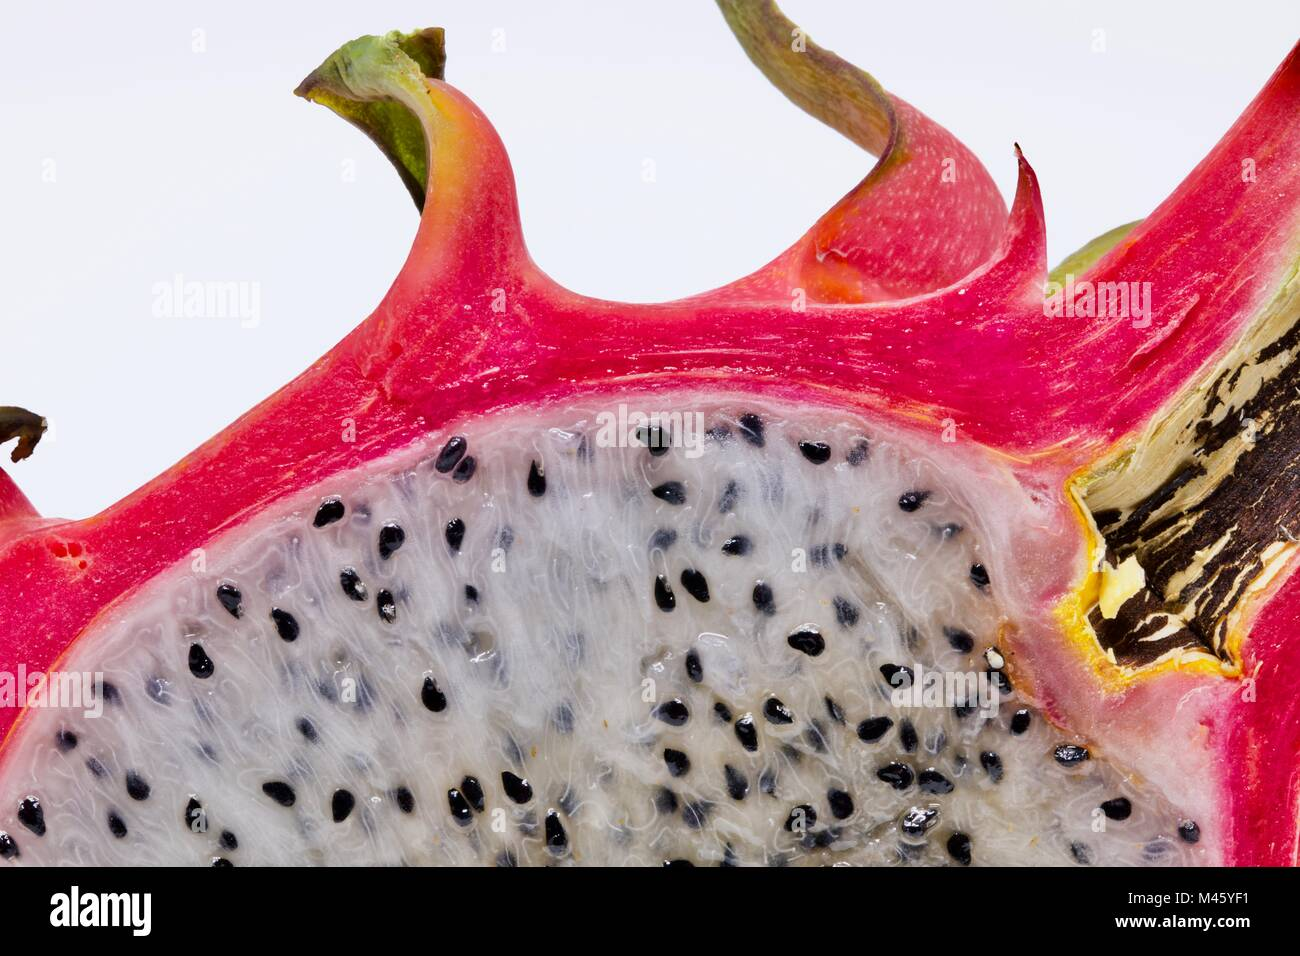 Dragon fruit (Hylocereus undatus) close up of the delicious fruit inside this unusual looking fruit - Stock Image